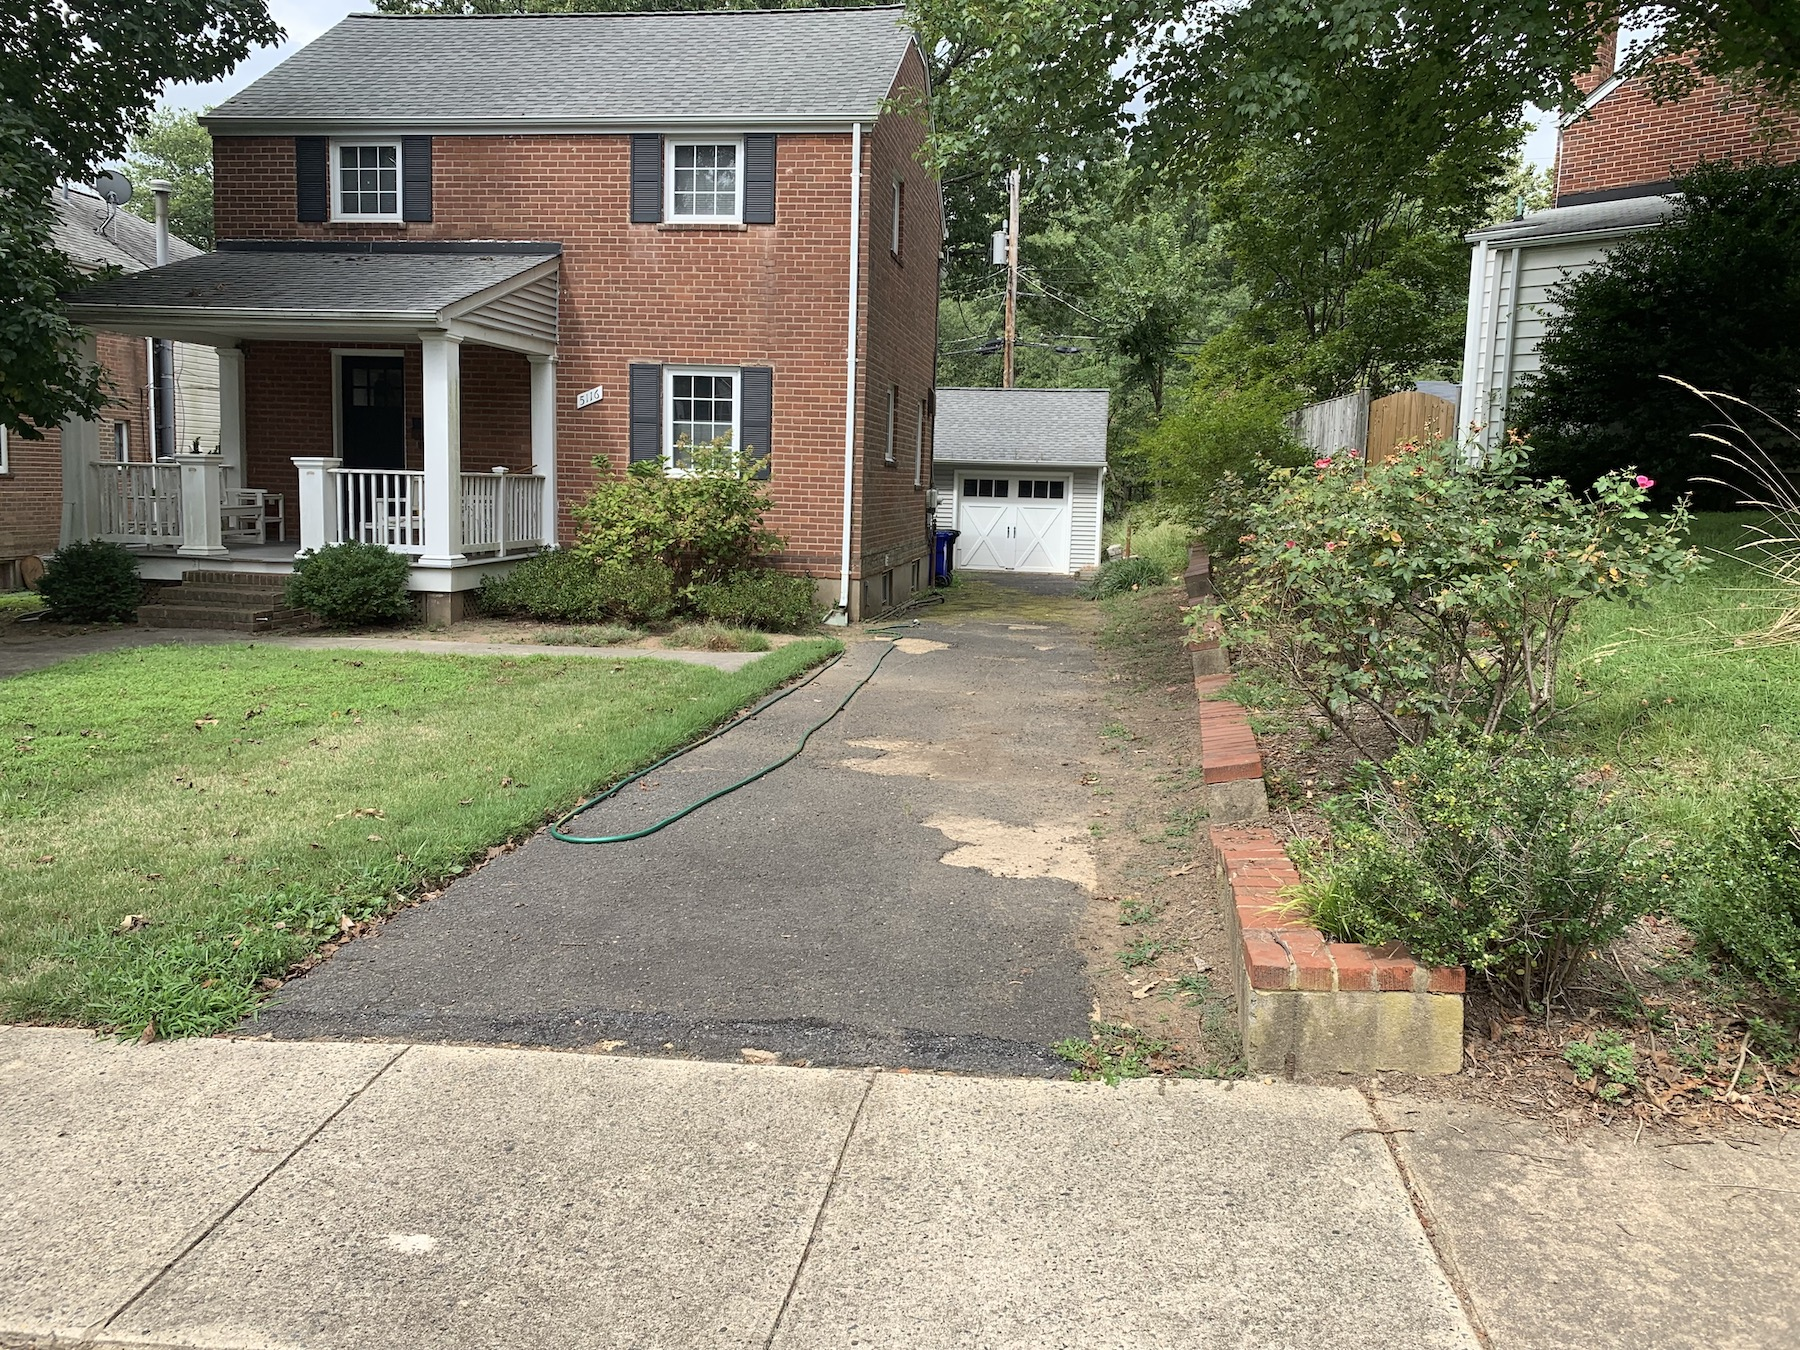 arlington va landscaping project before image before driveway, retaining wall and front porch